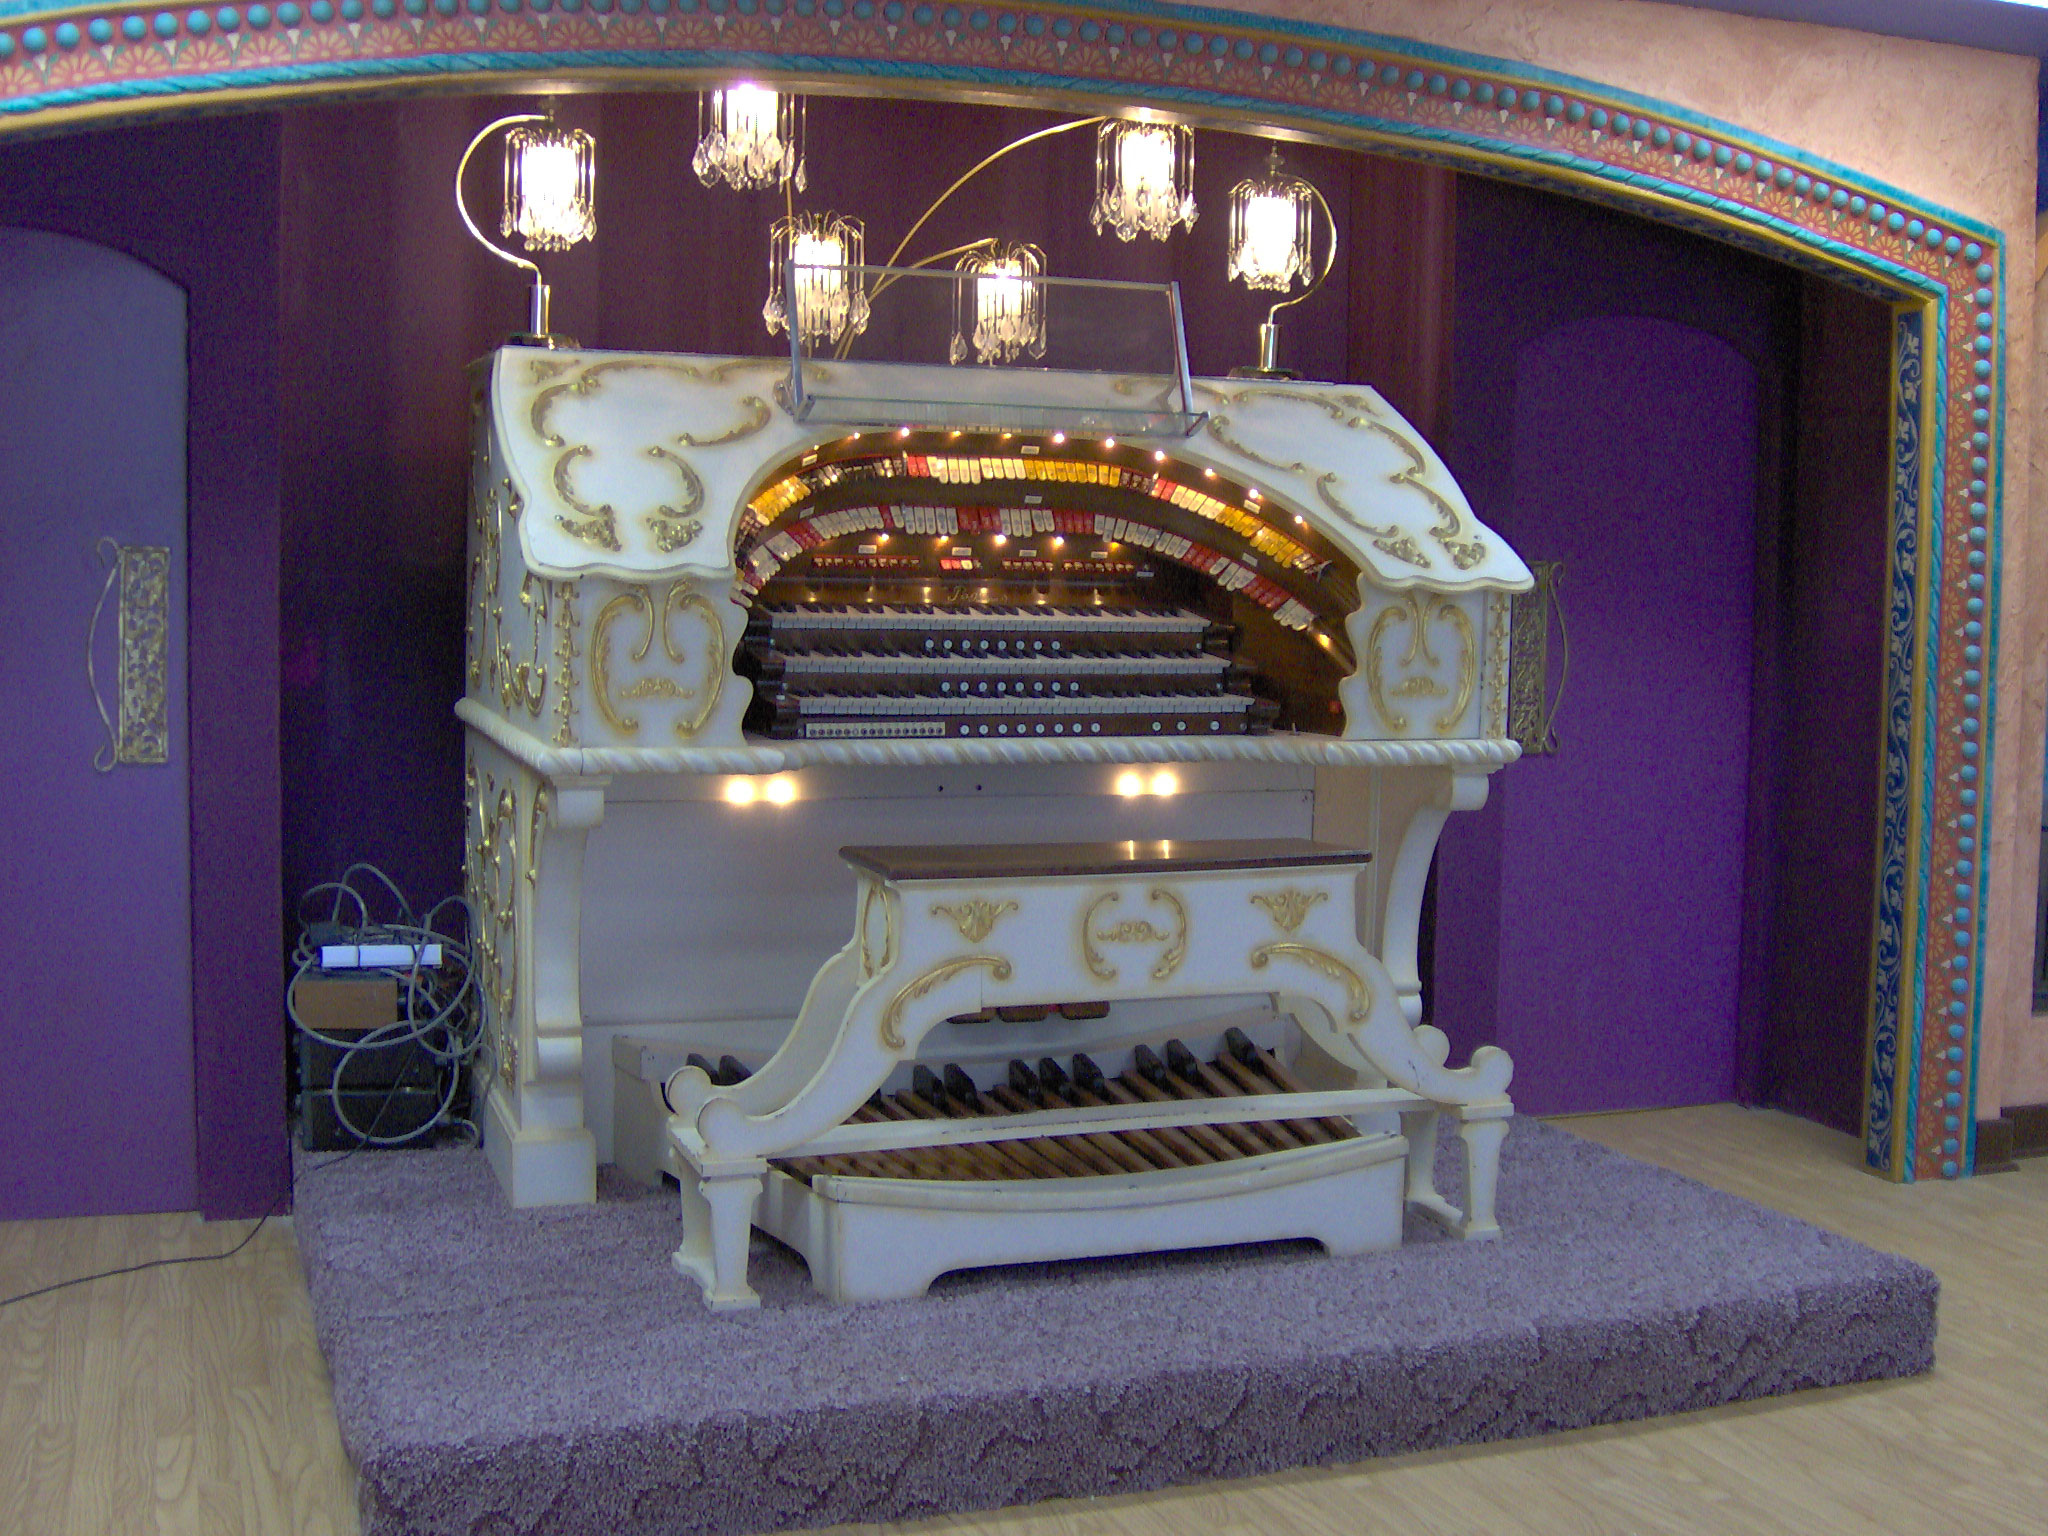 Click here to download a 2048 x 1536 JPG image showing the console of the 3/12 Grande Page Theatre Pipe Organ.